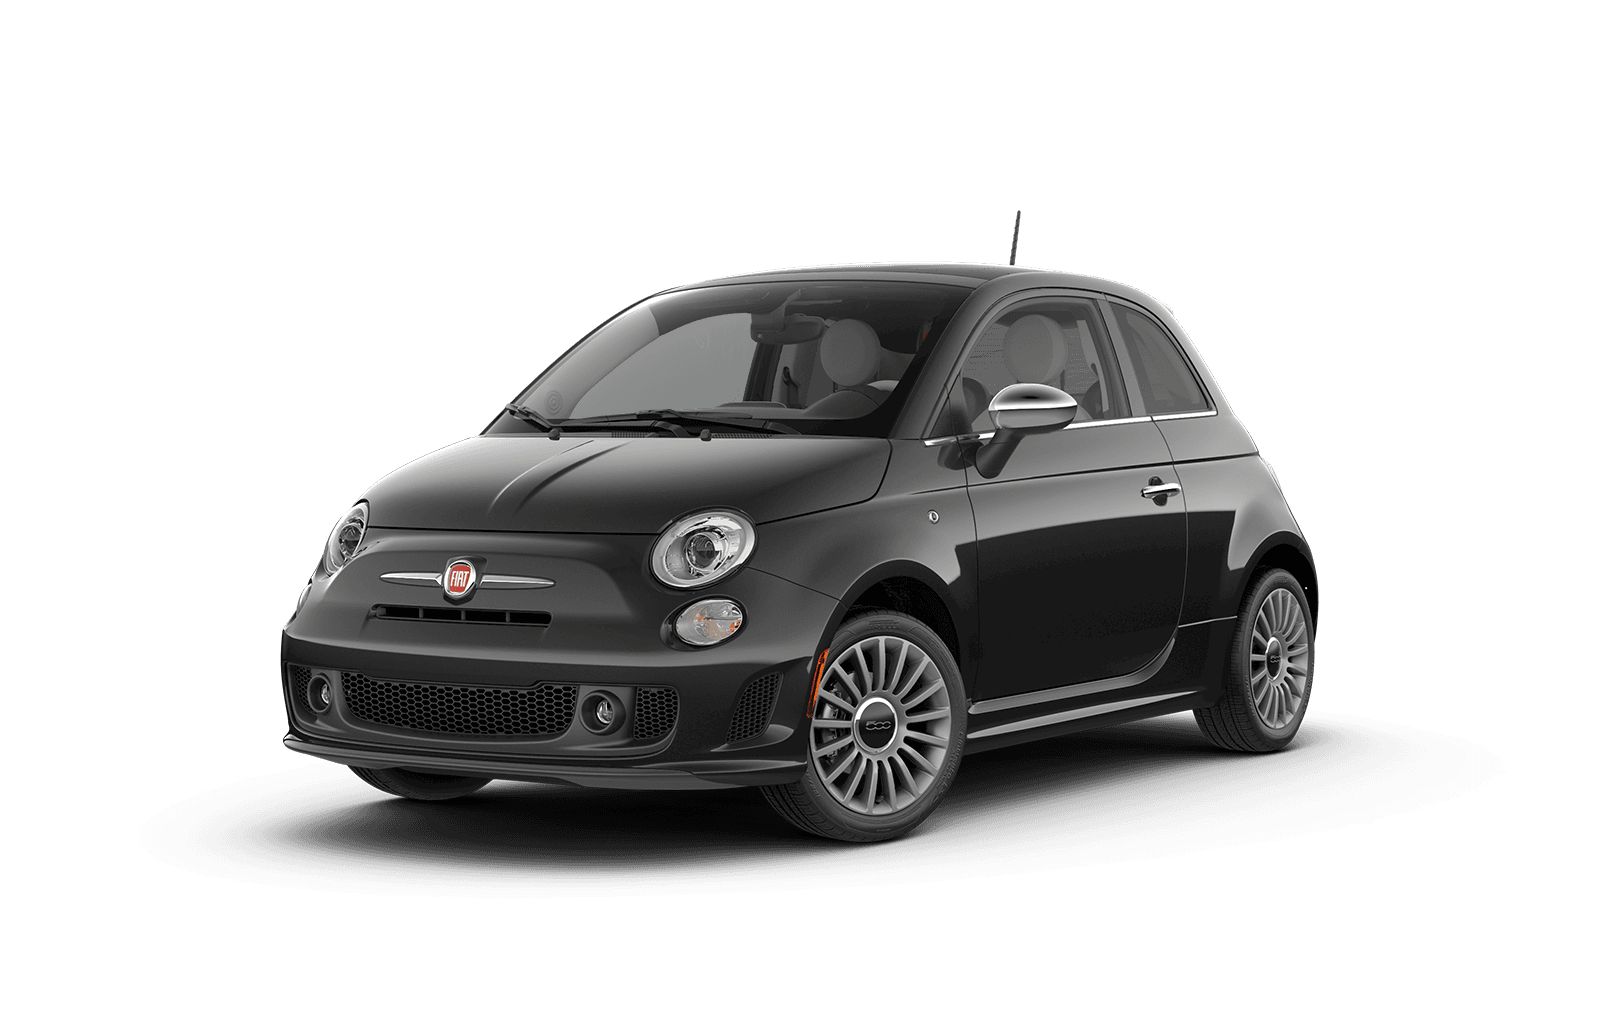 2018 FIAT 500 Full View in Dark Grey with Wheels